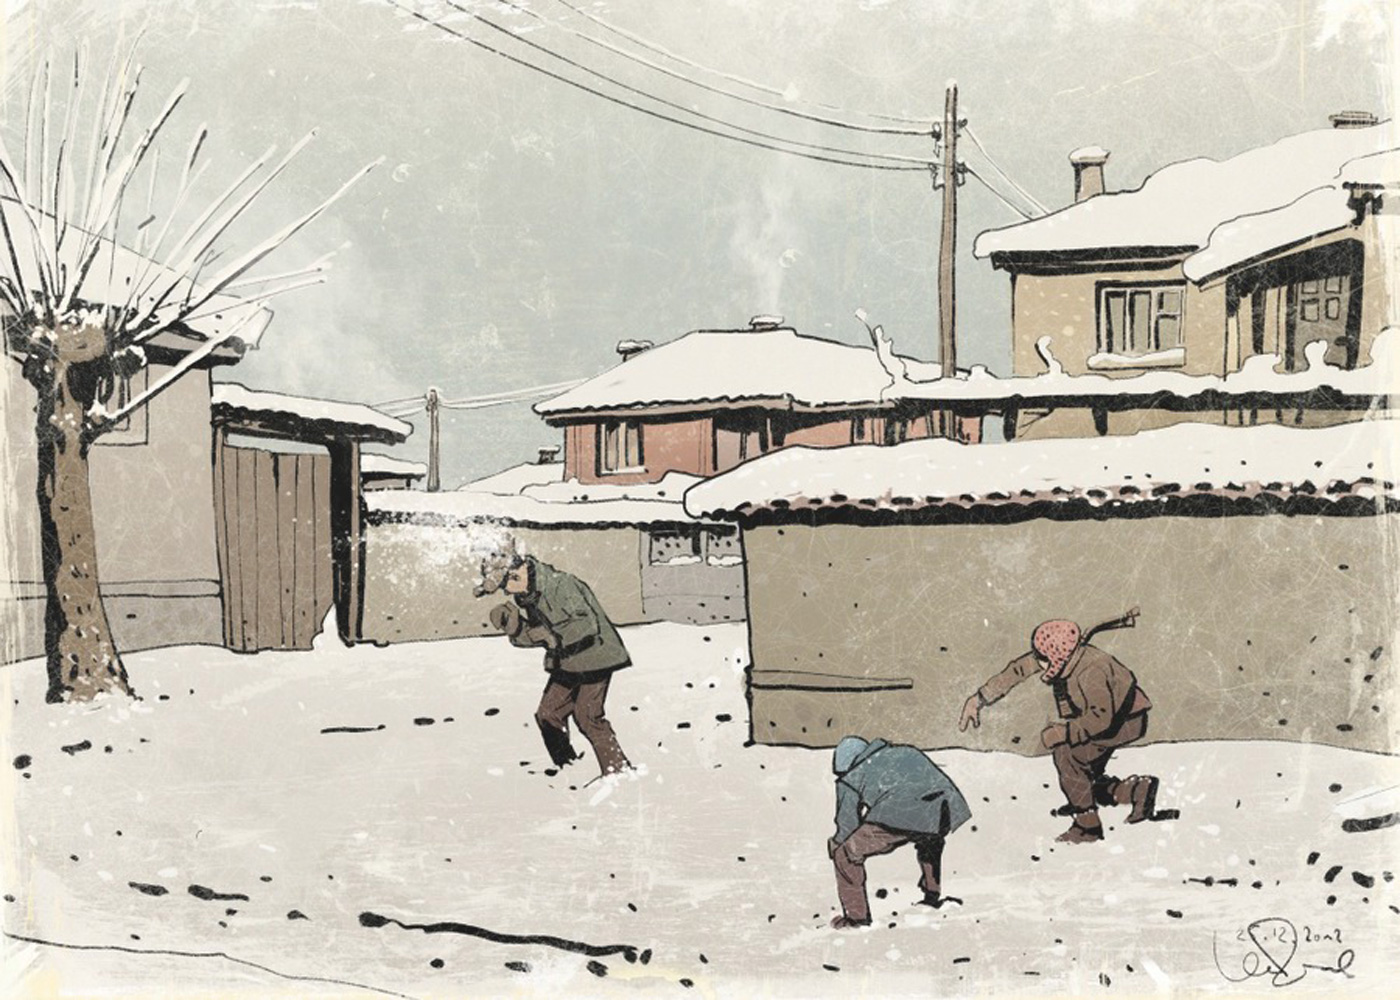 Comic Art Of Three Boys Playing With Ice In Winter